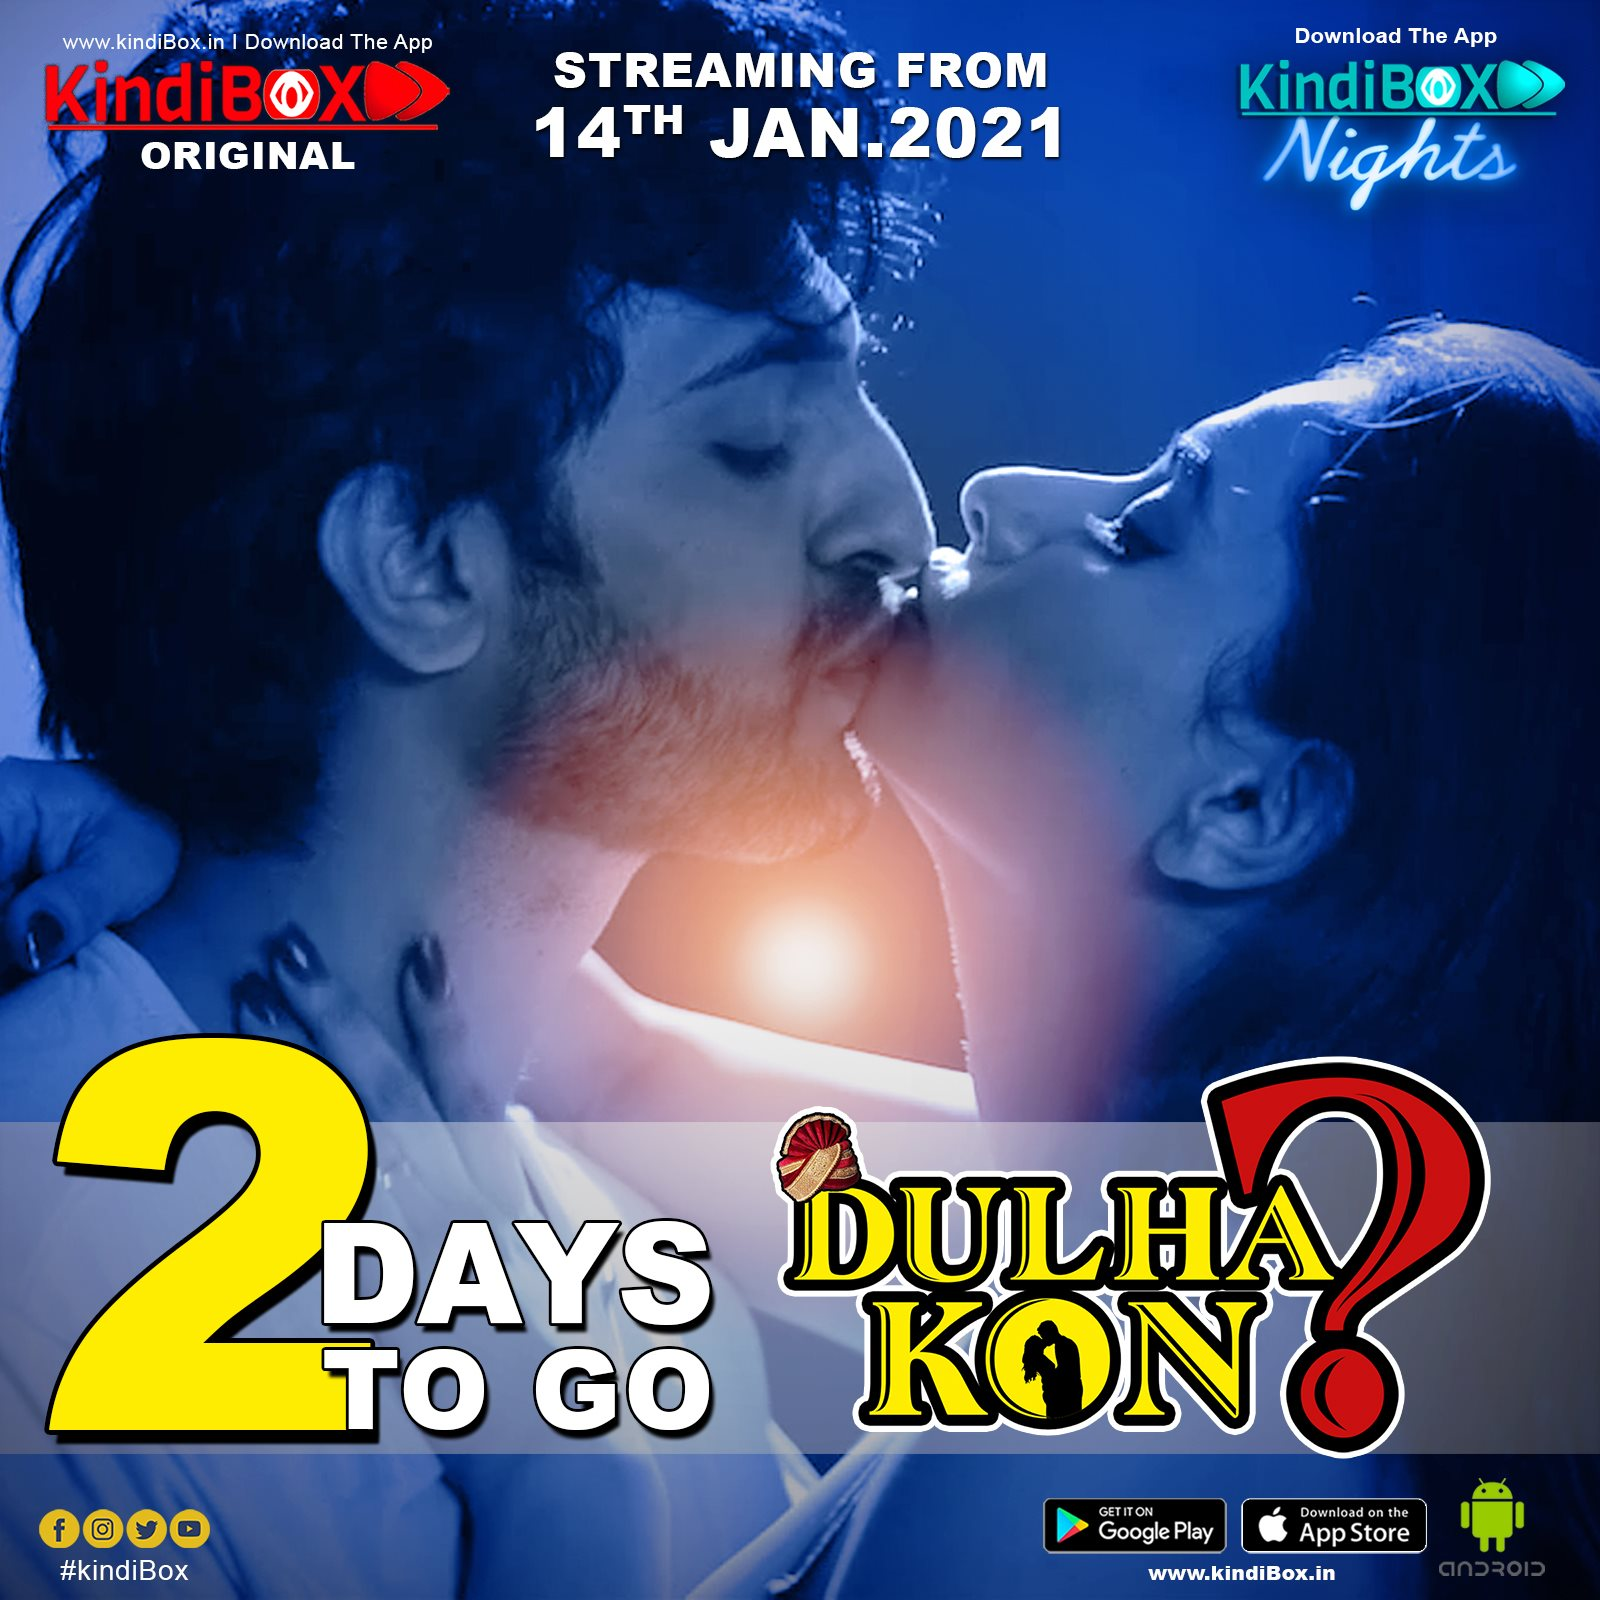 18+ Dulha Kon S01 2021 Hindi Kindibox Original Complete Web Series 720p HDRip 800MB Download